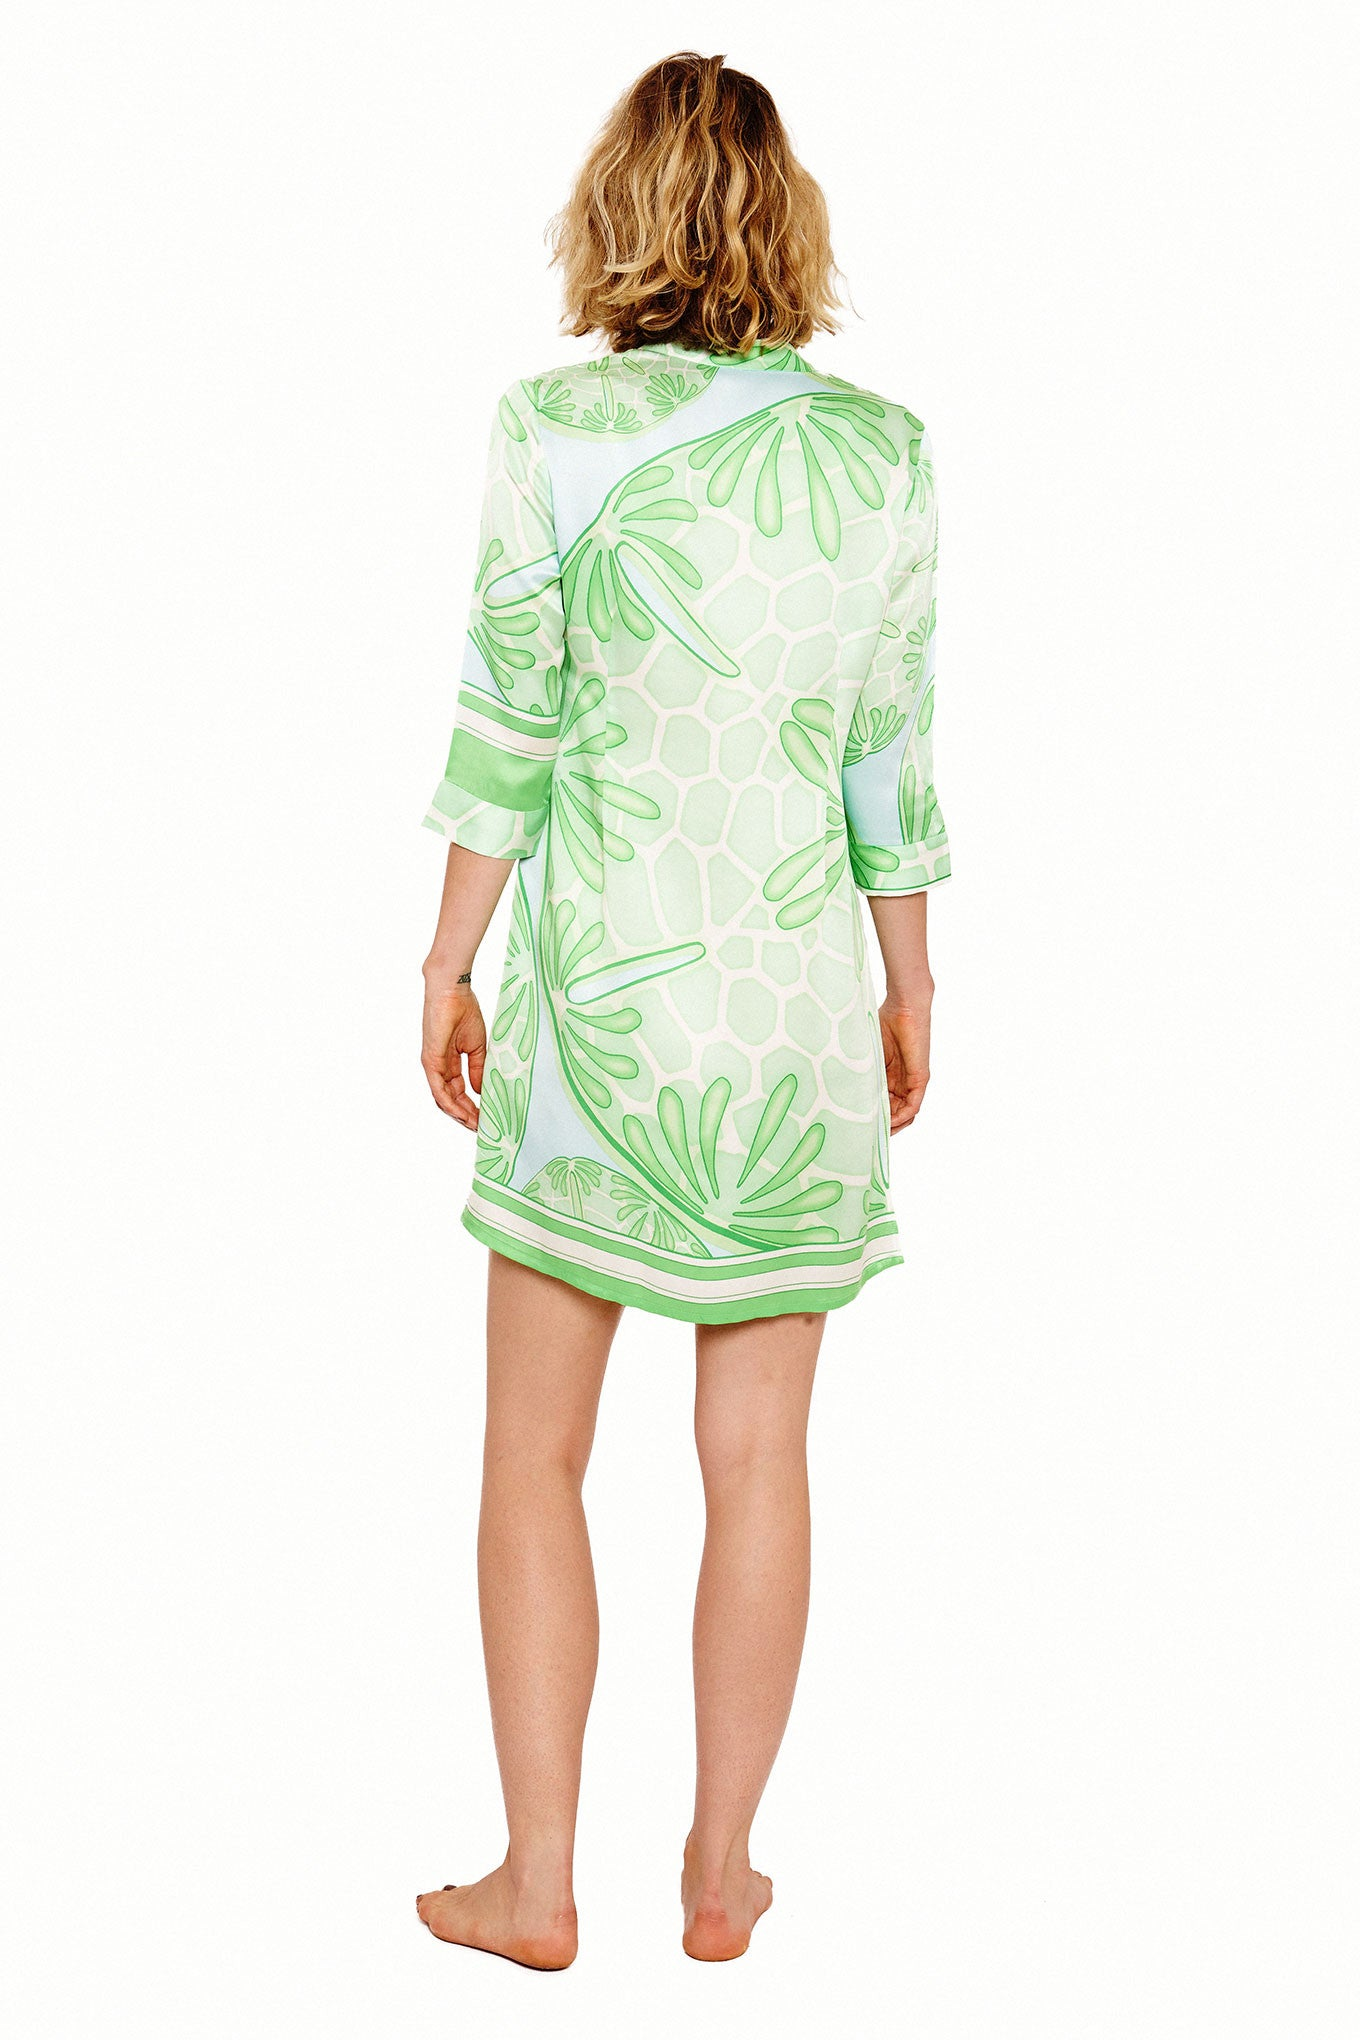 Lotty B Shirt Dress in Silk Crepe-de-Chine (Sand Dollar Green) Back